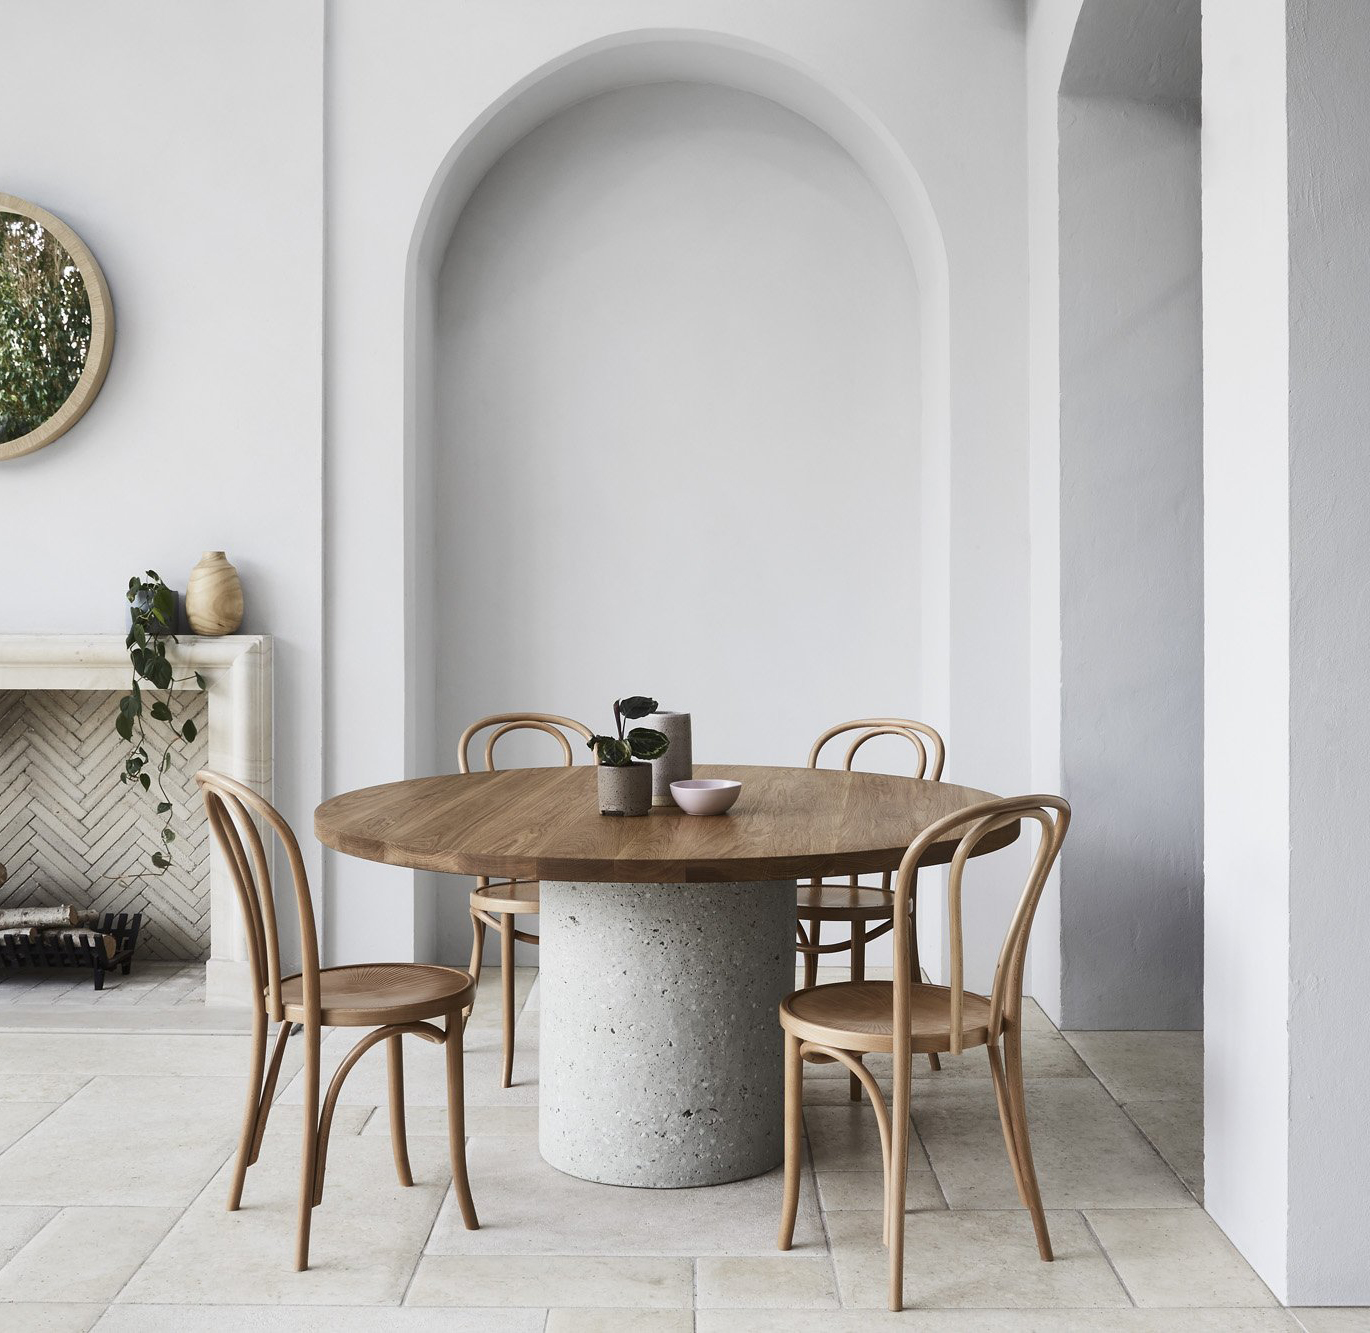 Concrete cylinder dining table from Harpers Project